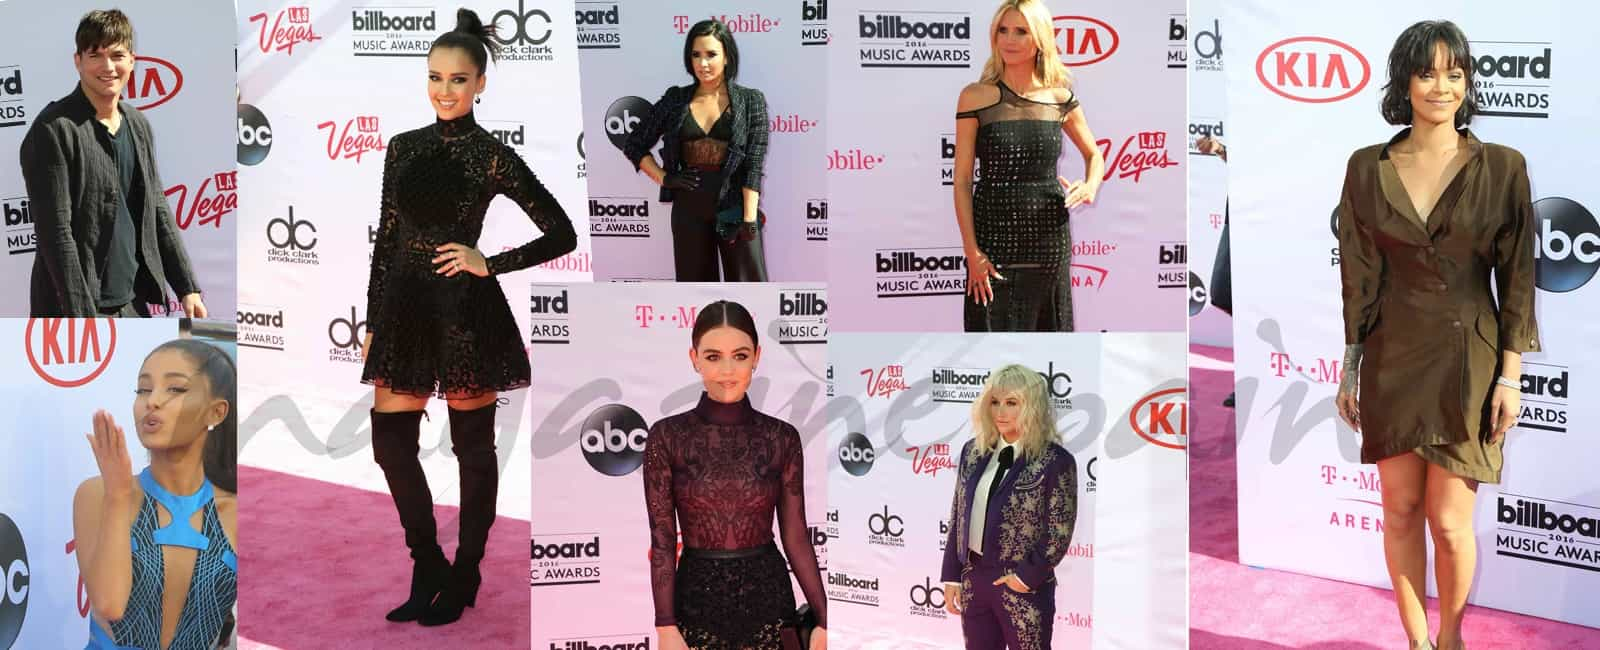 Premios Billboard Music 2016